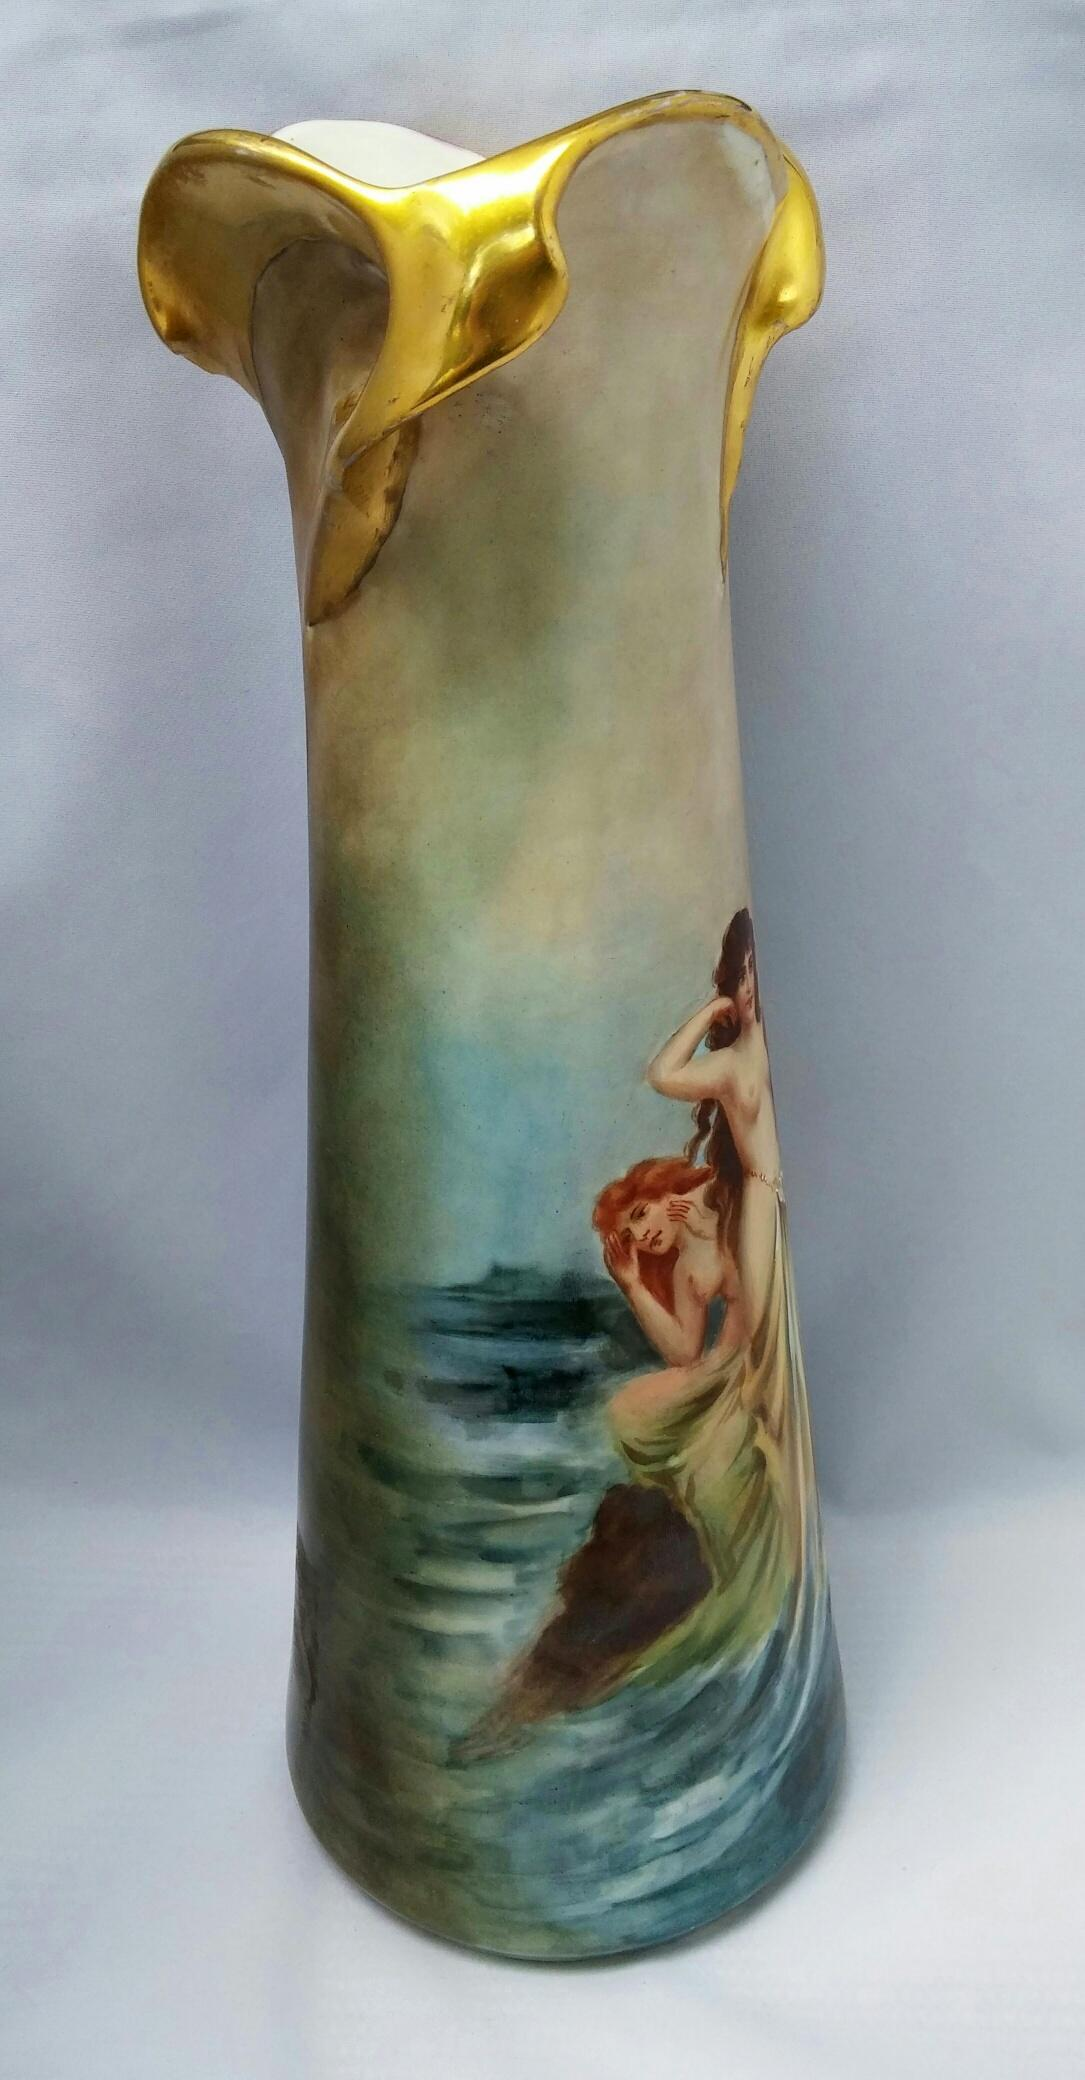 Austrian 14 Hp Twisted Gold Handled Vase With 3 Nude Greek Sirens From -1551